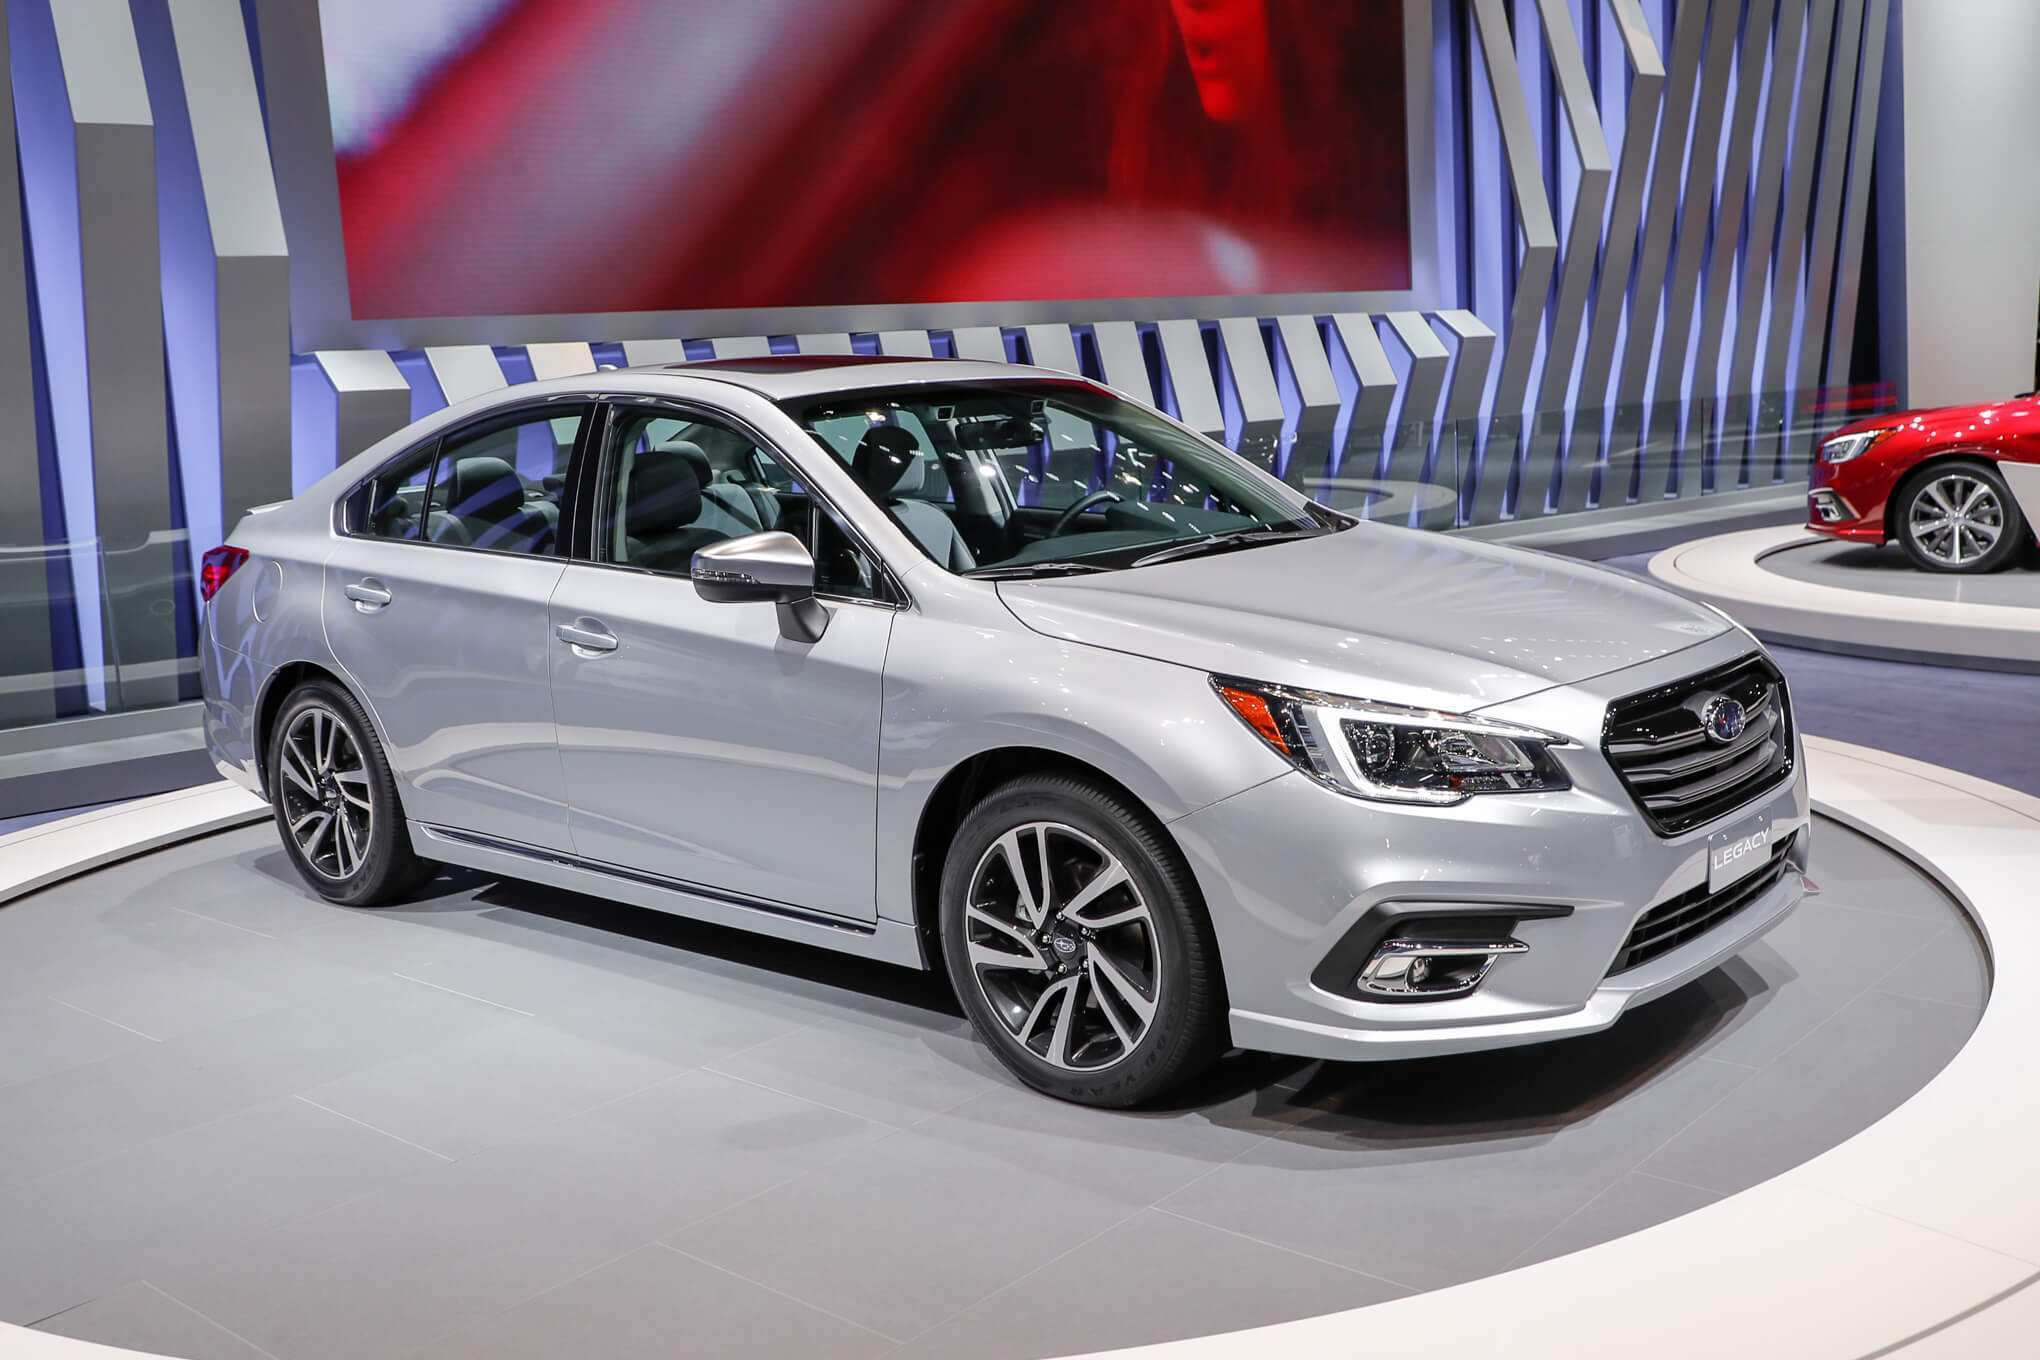 65 All New Subaru Legacy 2020 Redesign Price And Release Date